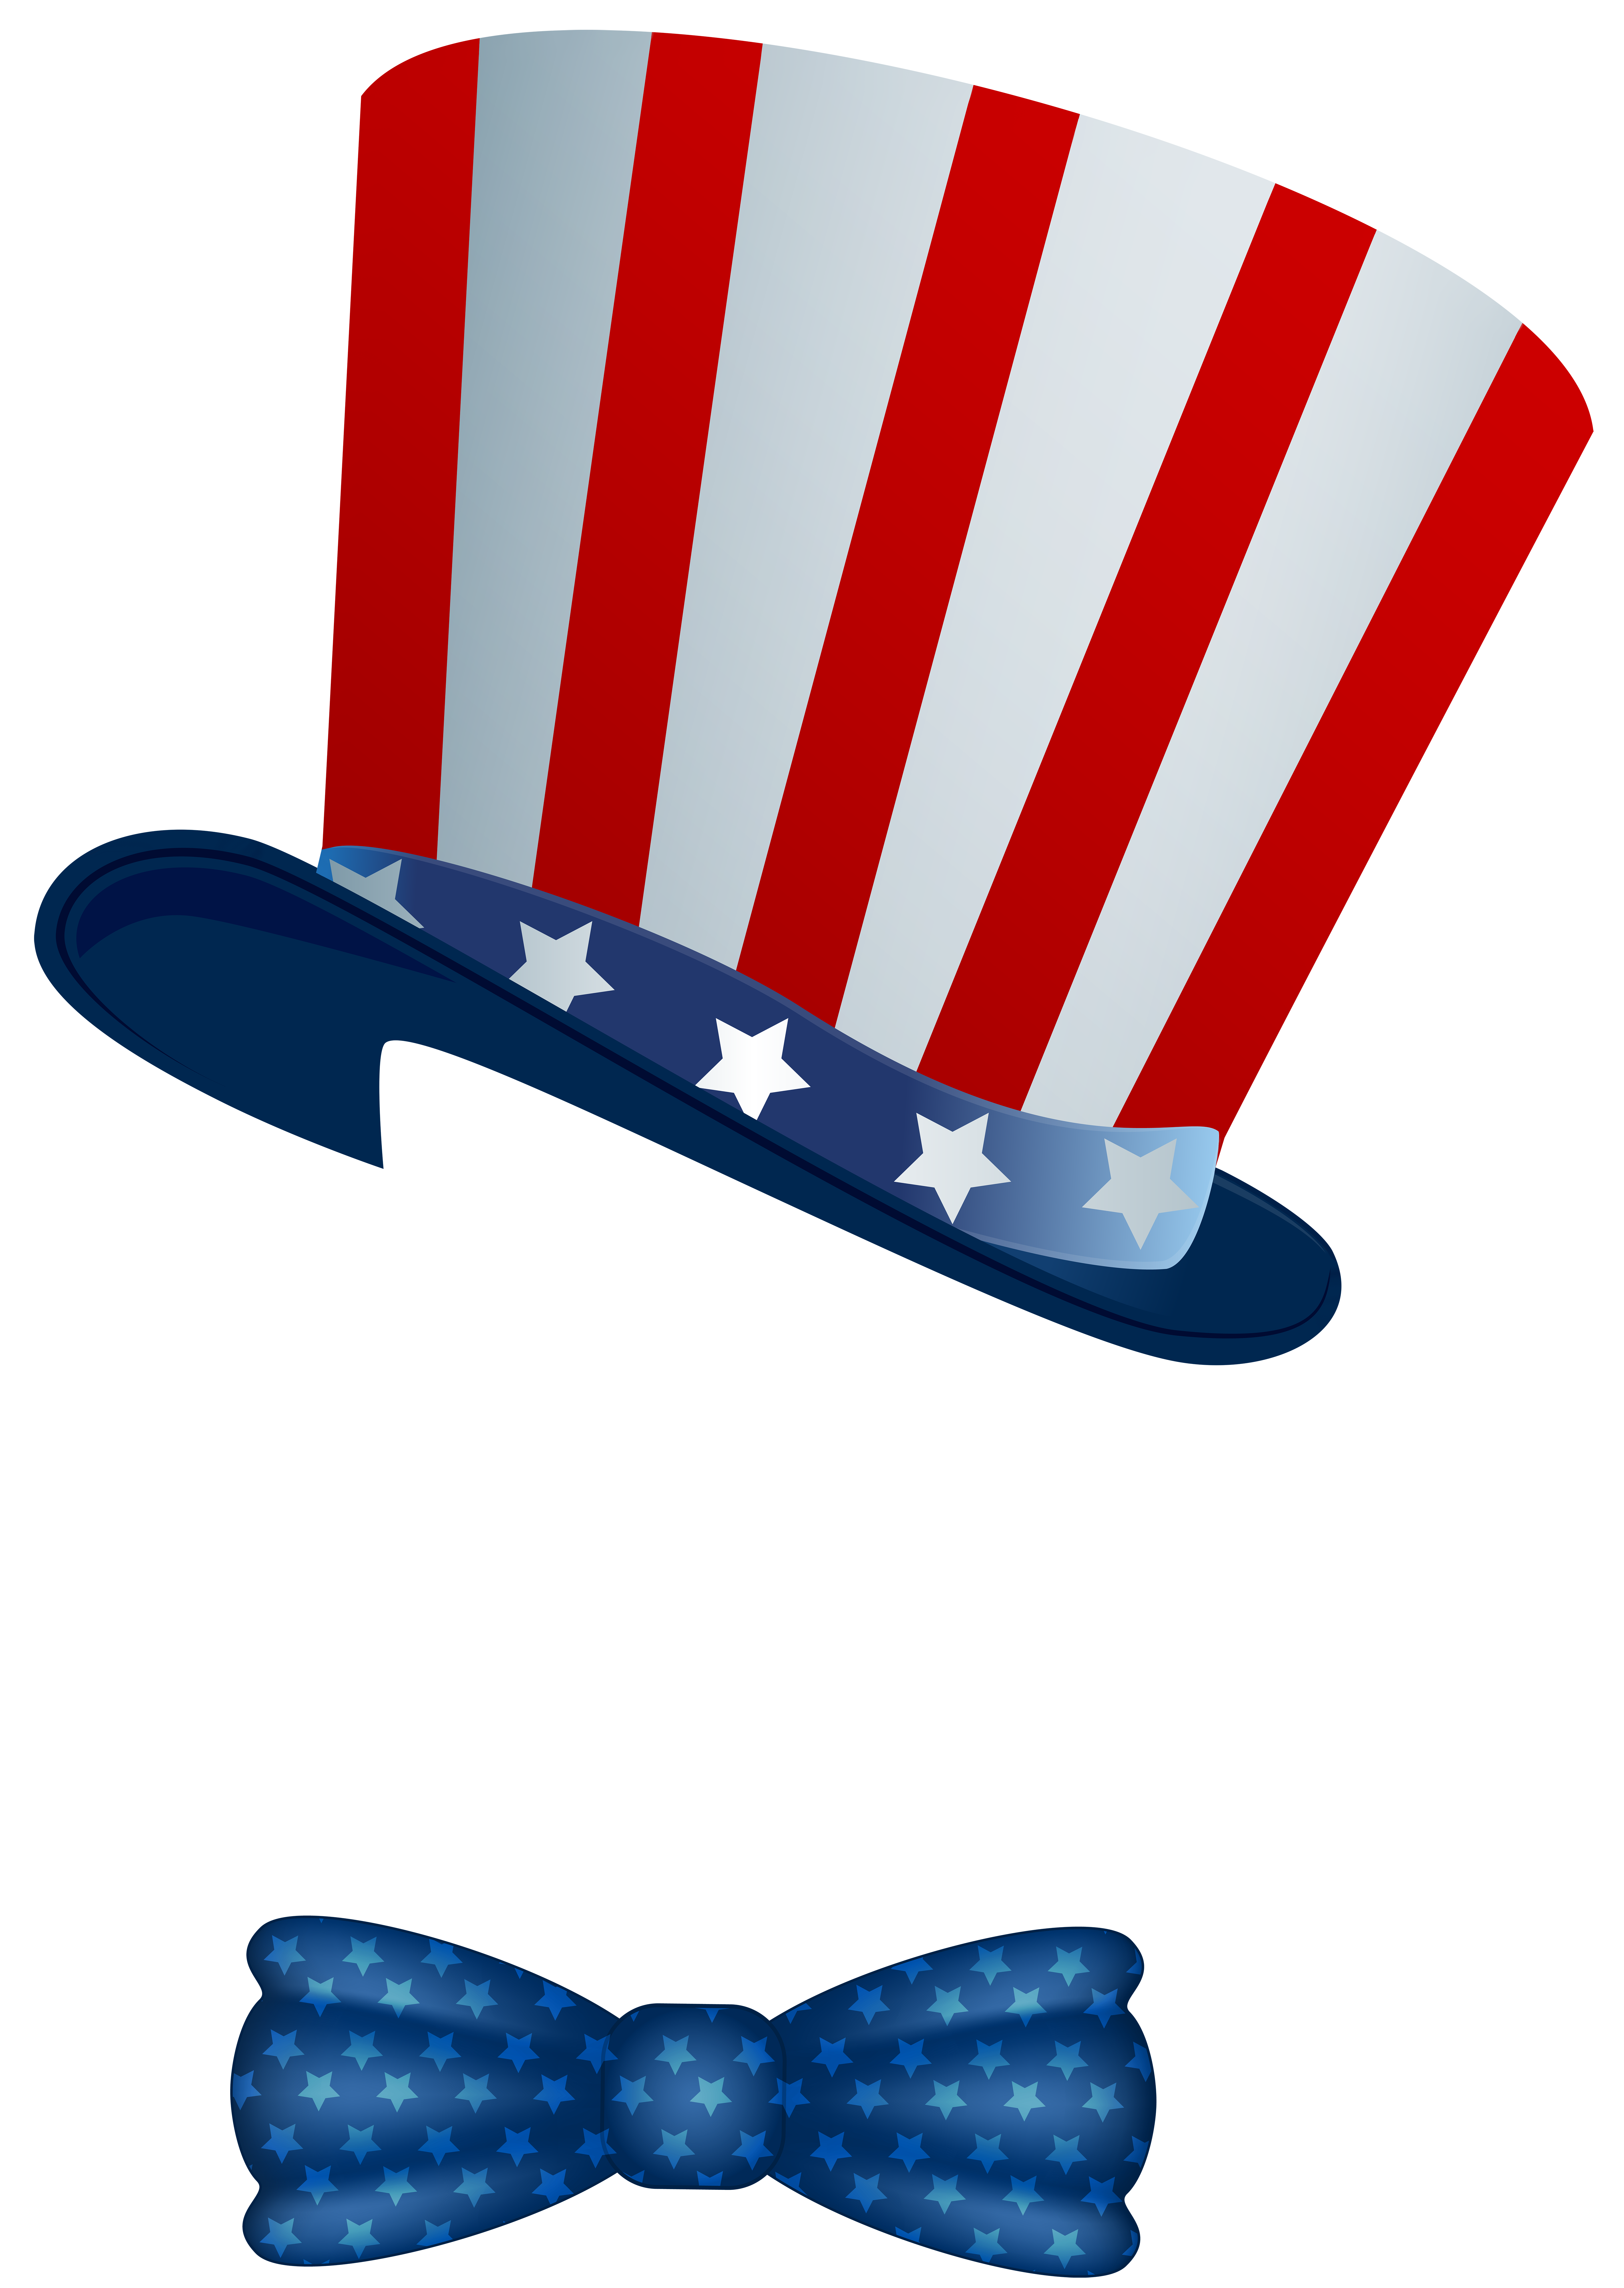 Patriotic clipart red white blue bow.